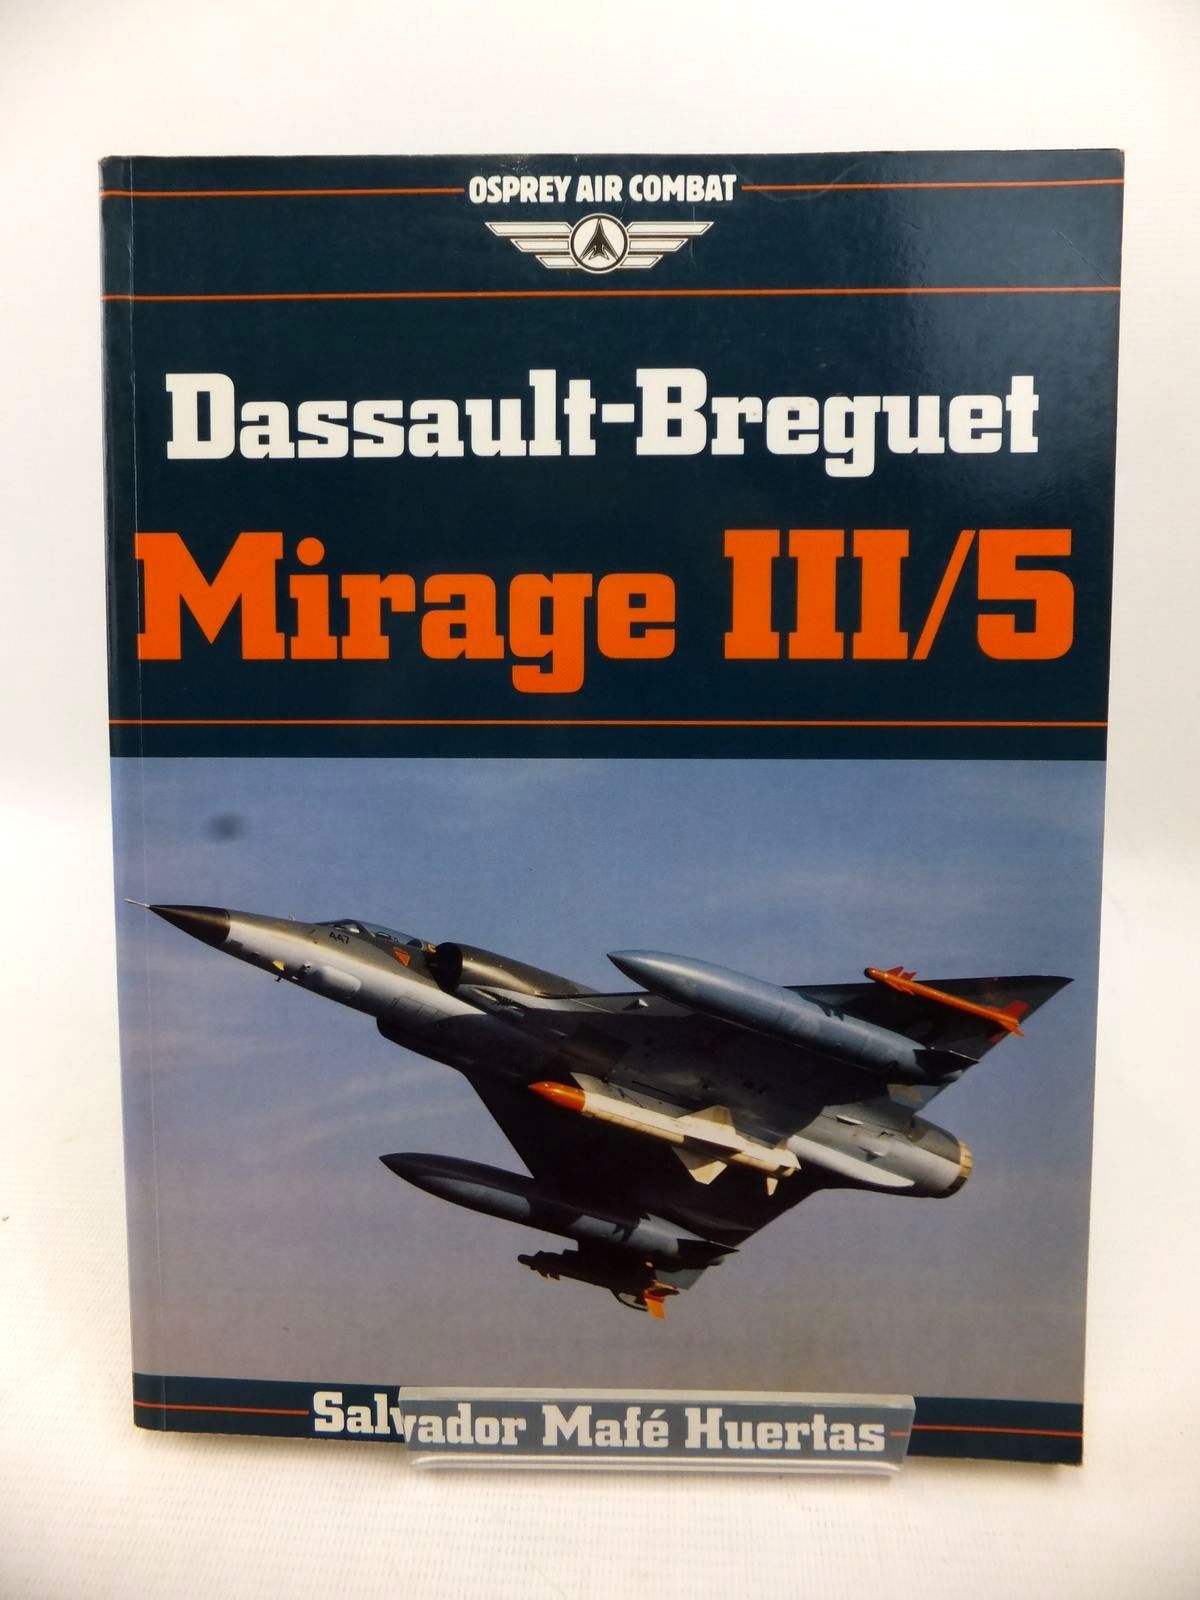 Photo of DASSAULT-BREGUET MIRAGE III/5 written by Huertas, Salvador Mafe published by Osprey Air Combat (STOCK CODE: 1813432)  for sale by Stella & Rose's Books